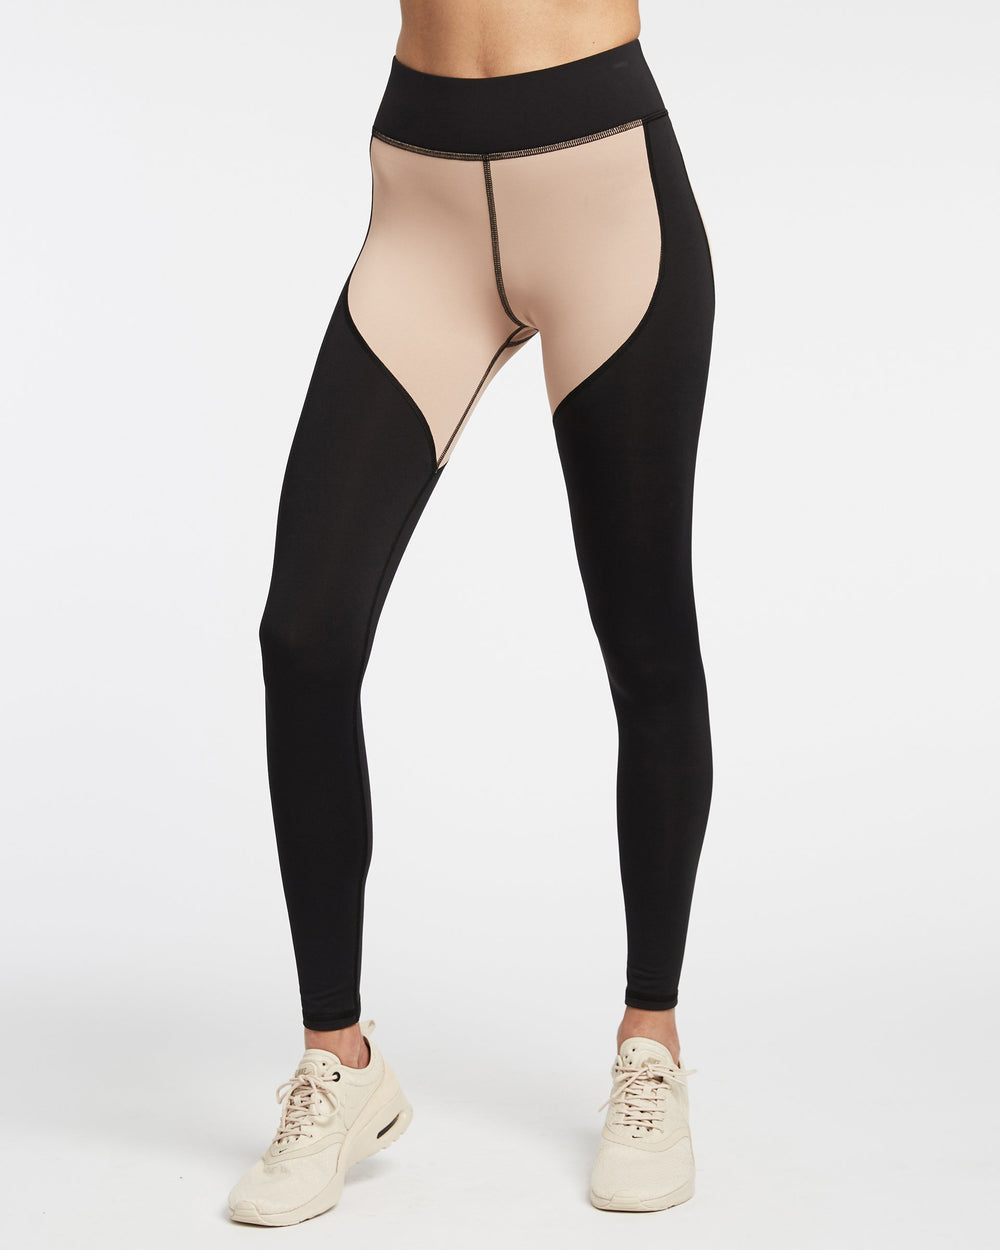 Cadence Legging - Nude Pink